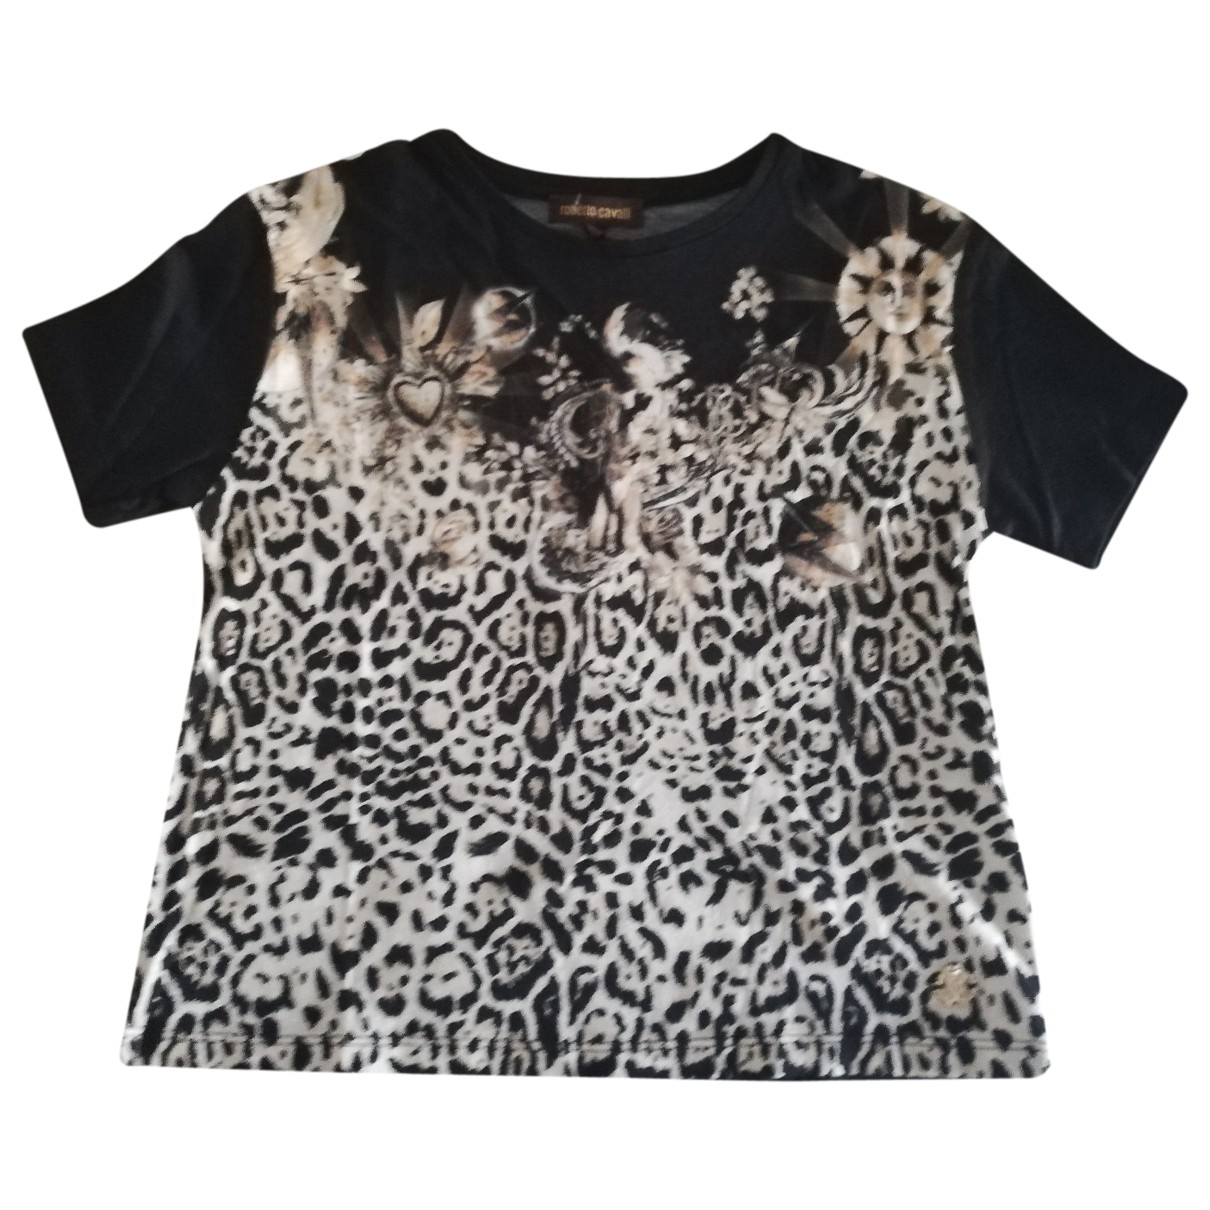 Roberto Cavalli \N Black Cotton  top for Kids 6 years - up to 114cm FR